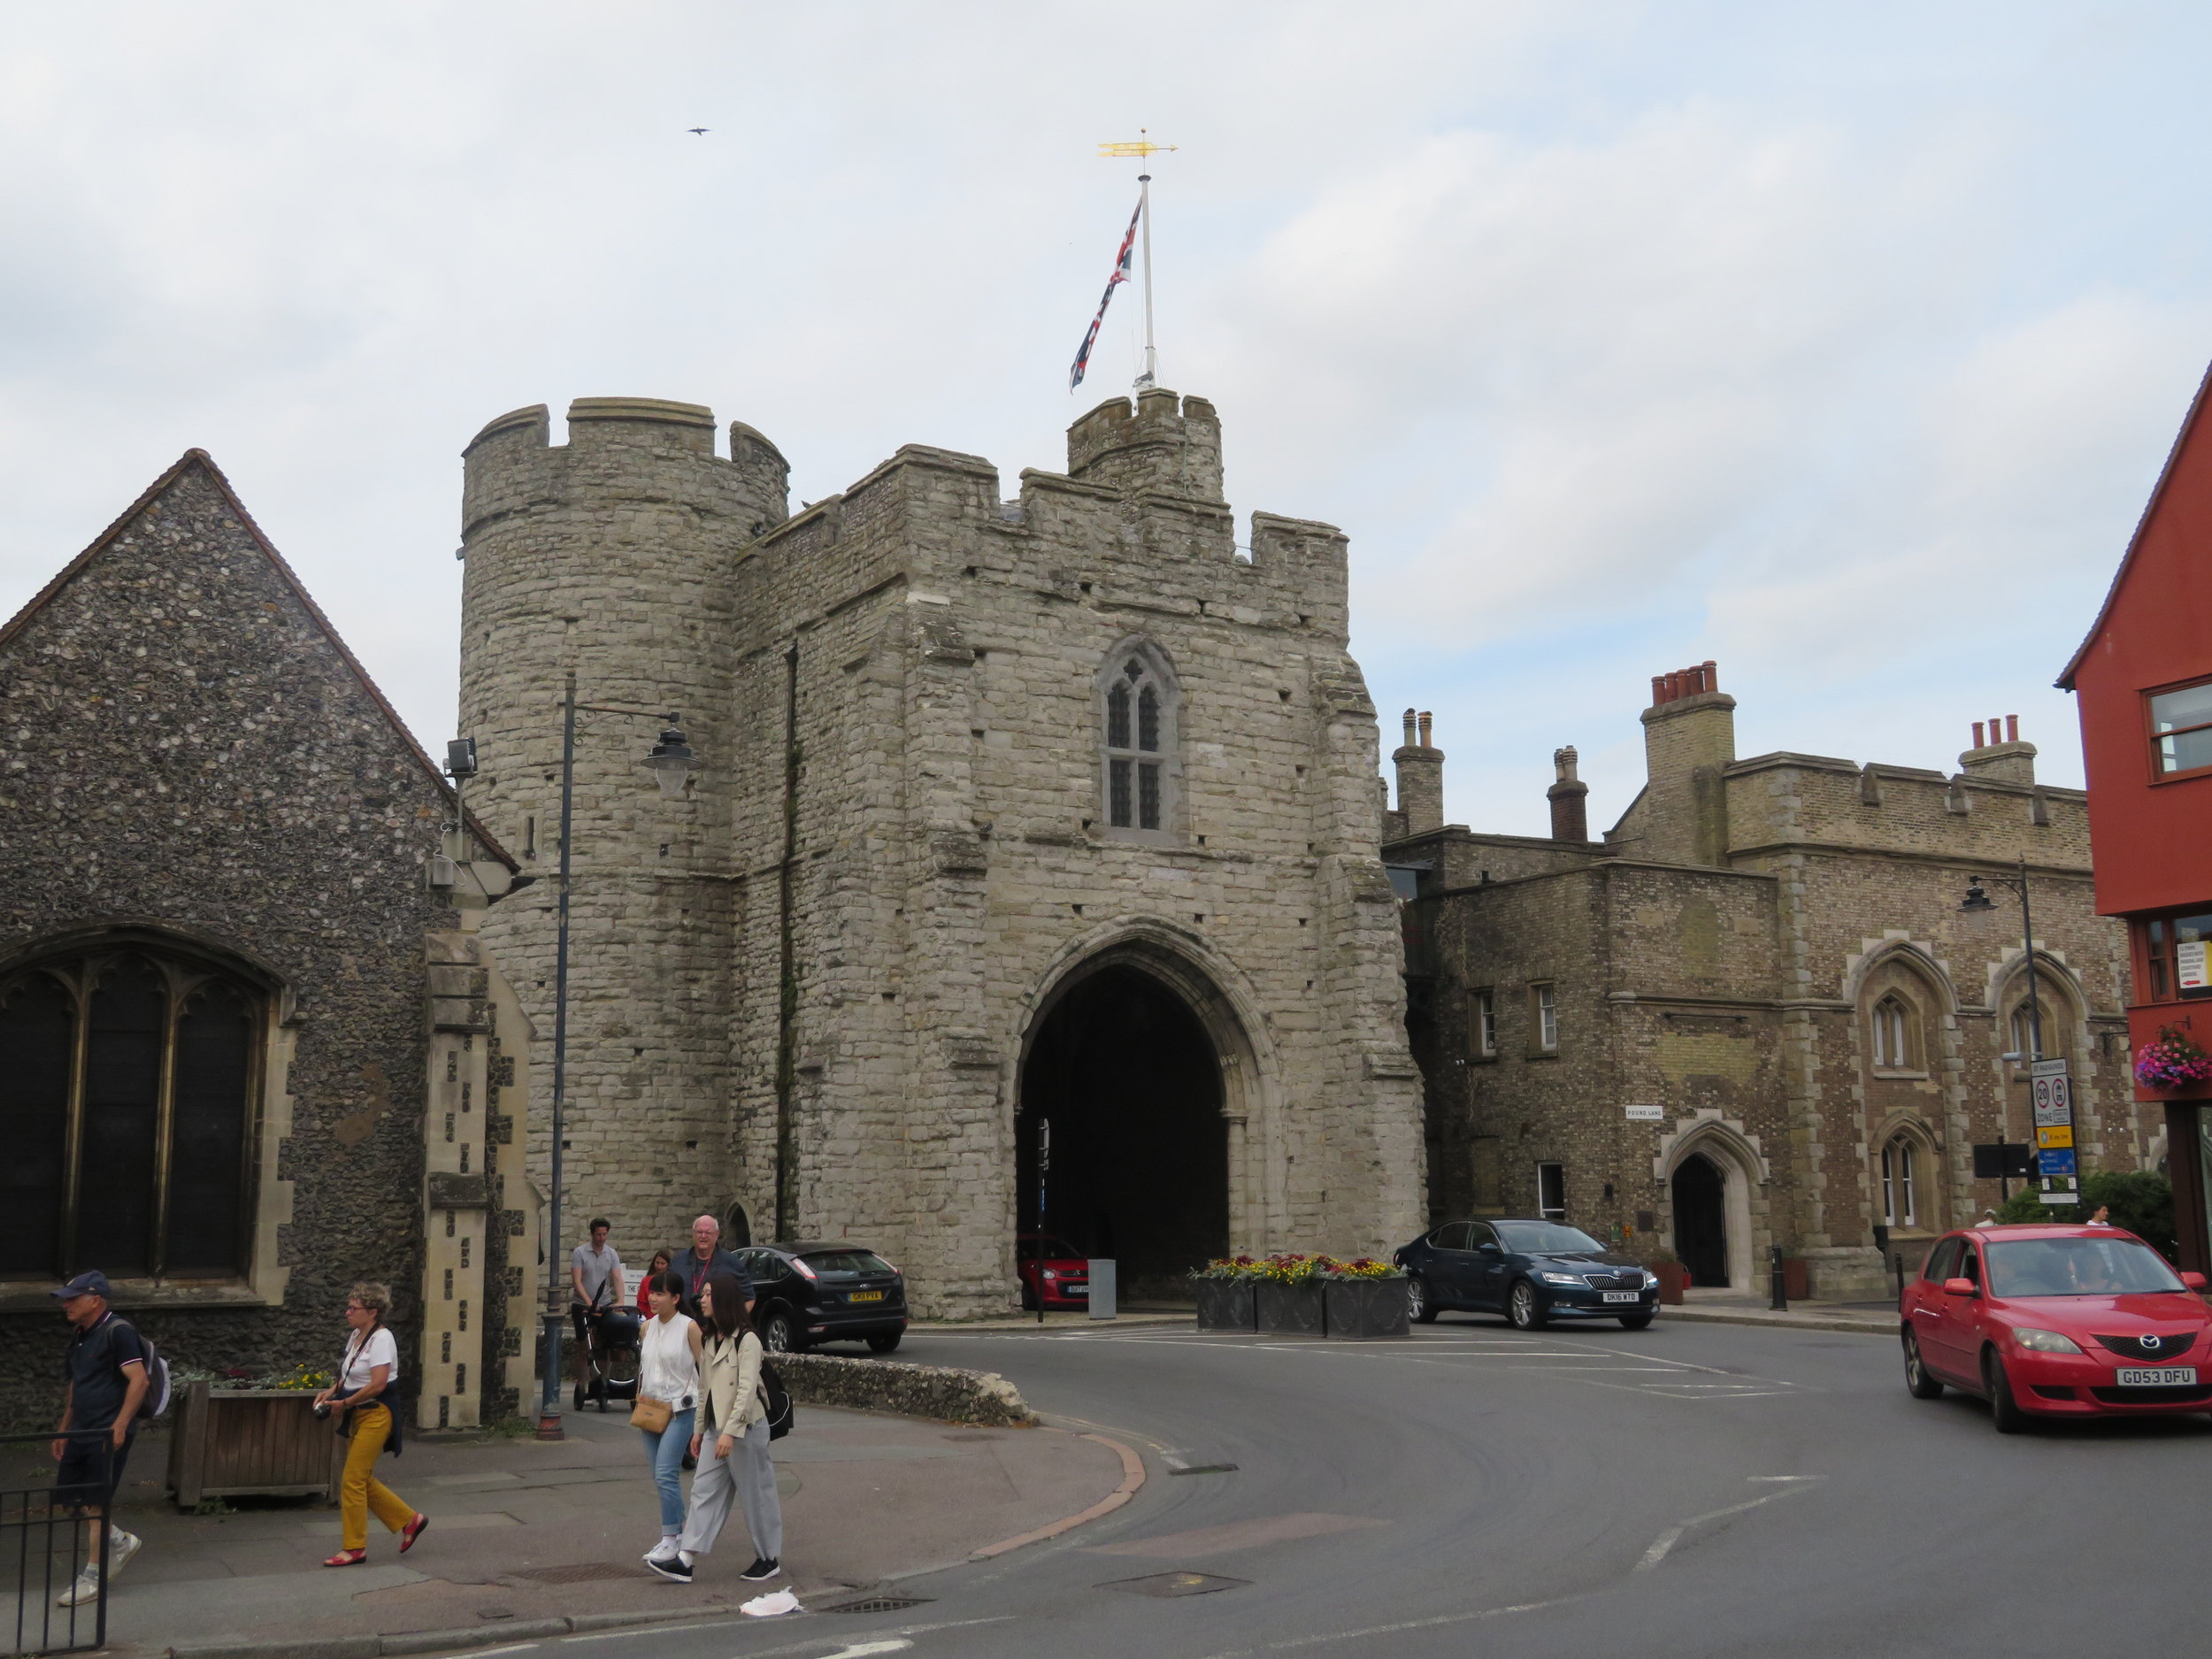 Westgate … medieval portal to the city